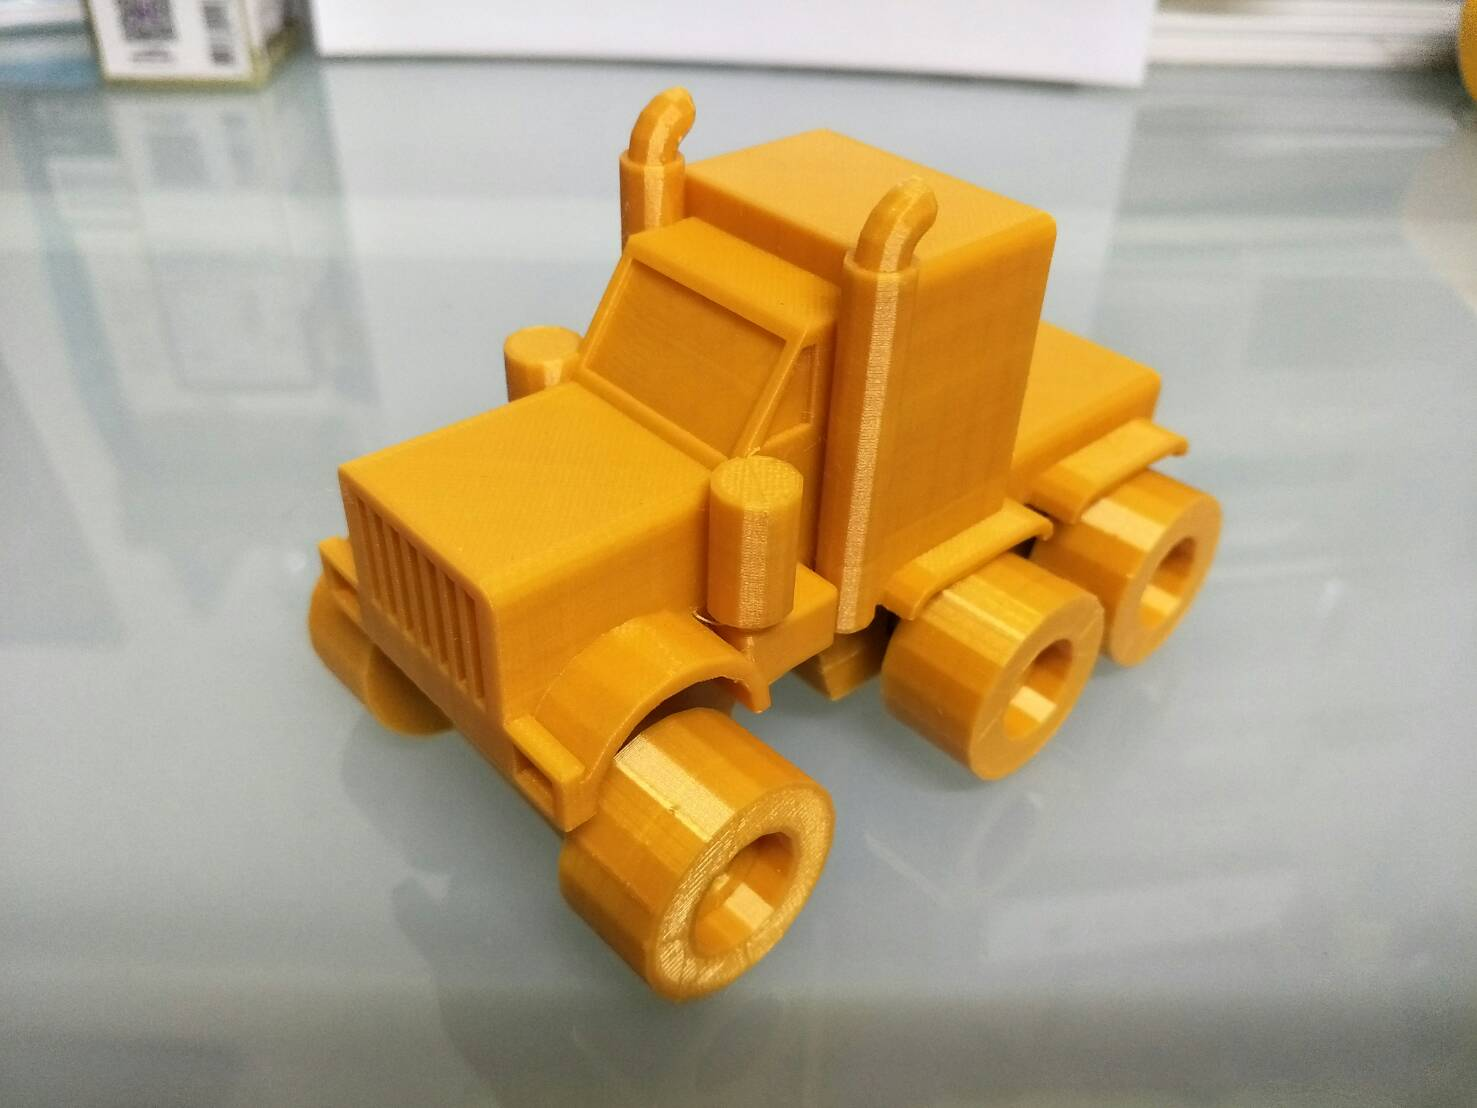 34813.jpg Download STL file American truck (no container) • Template to 3D print, Mechanic